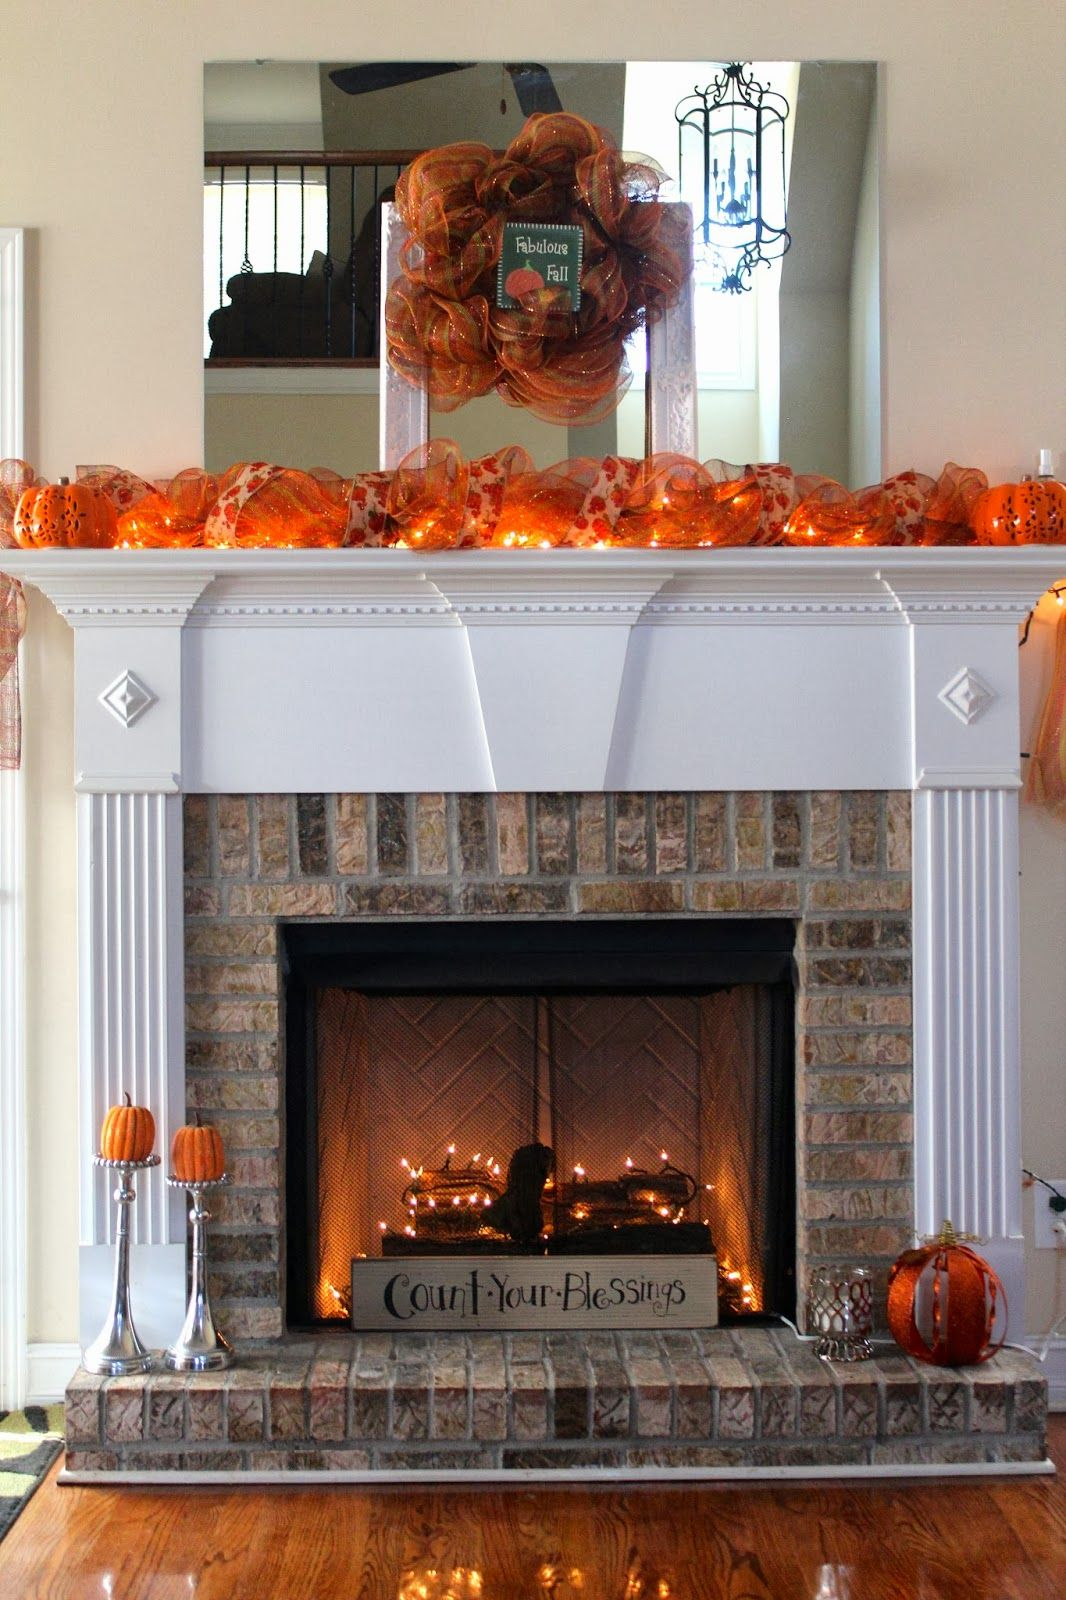 Like The Wood Pile In The Fireplace With The Twinkle Lights Illusion Of Fire Without The Real Thing Think Wa Fall Fireplace Fall Fireplace Decor Fall Decor